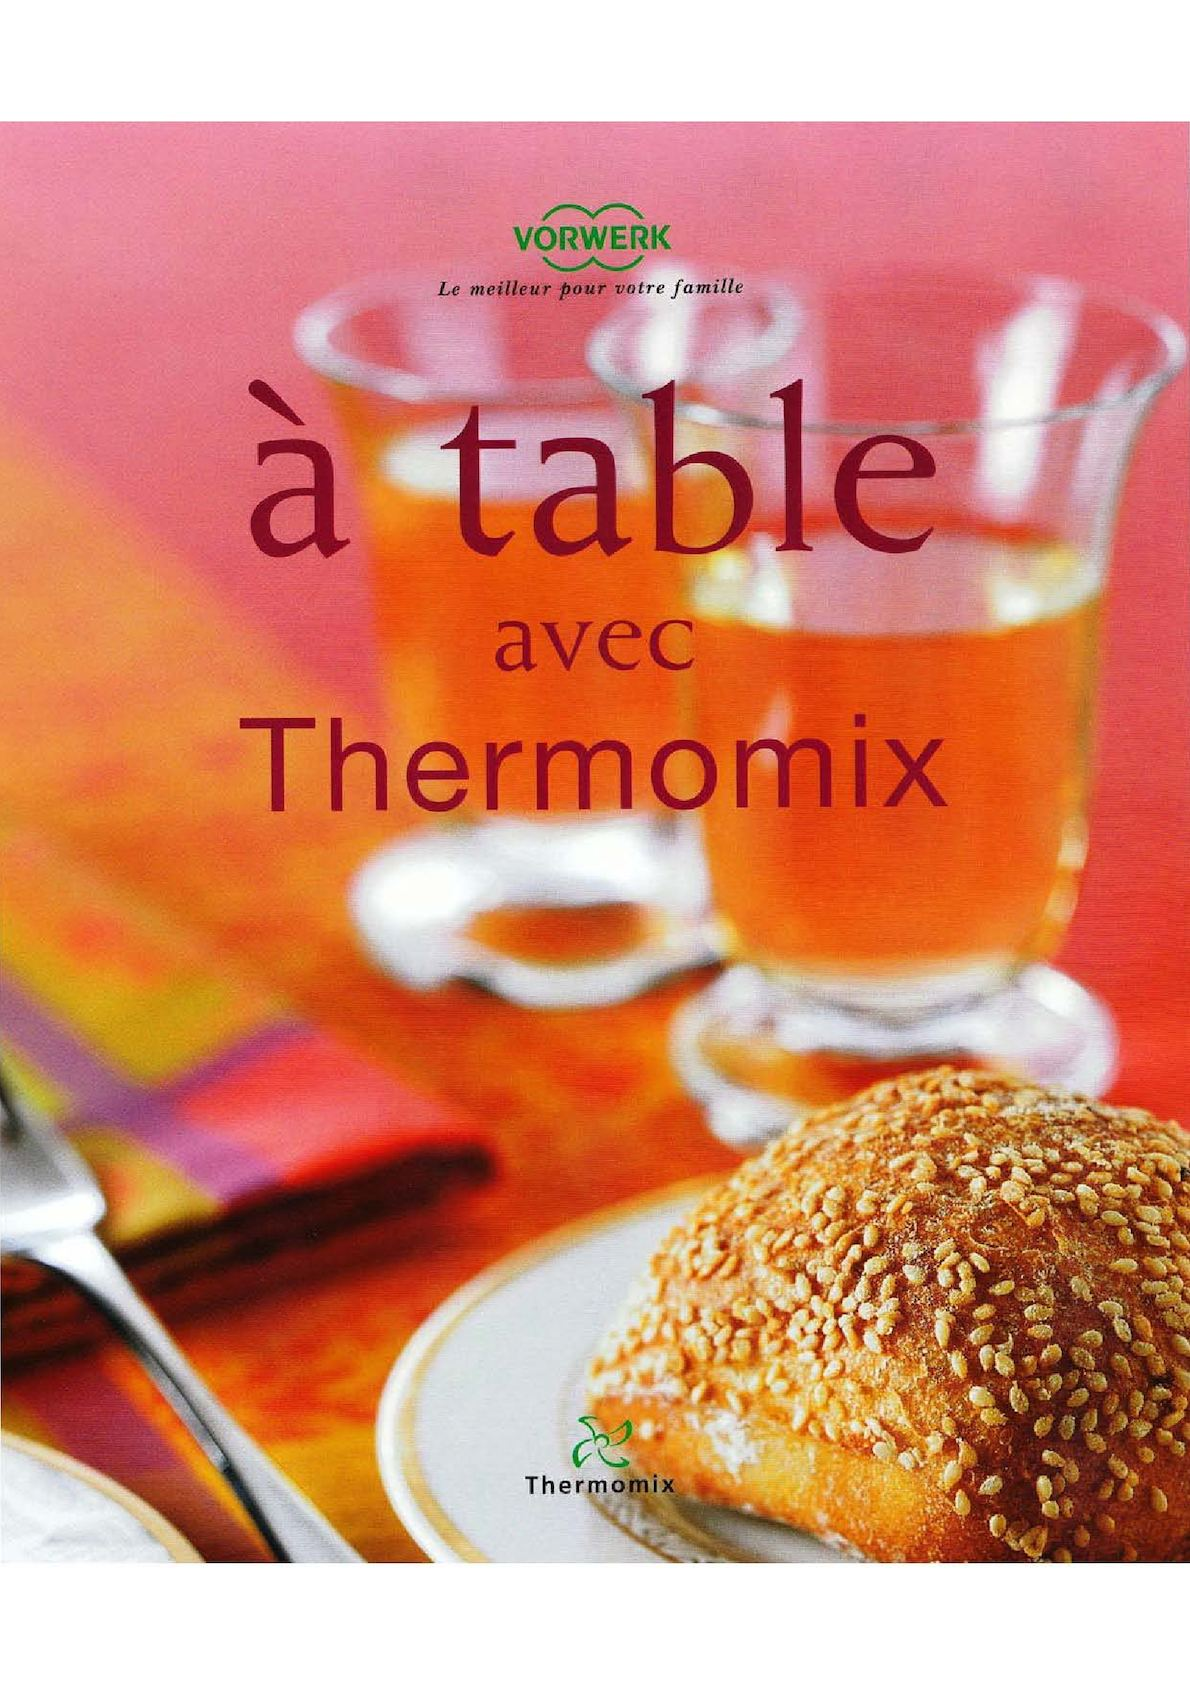 Calam o a table avec thermomix - Livre recette thermomix pas cher ...